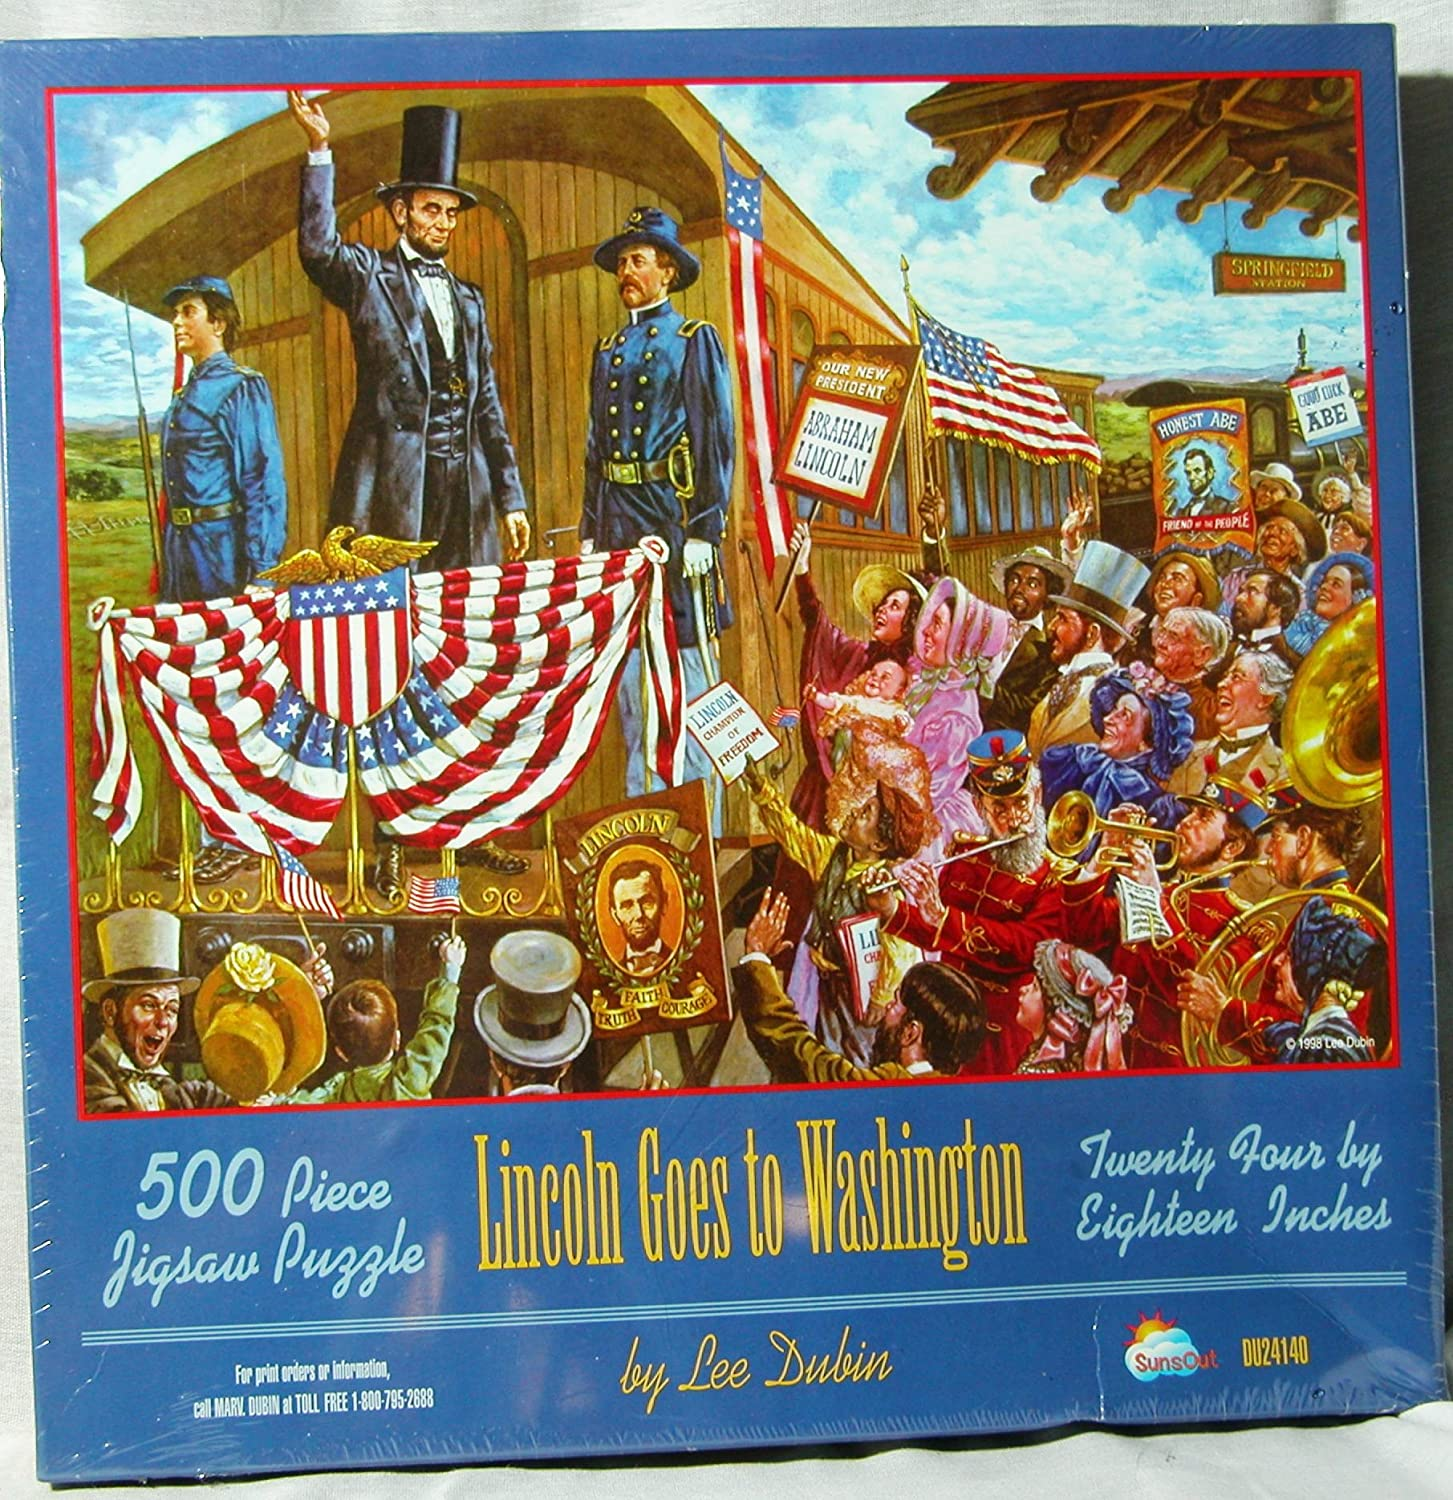 Lincoln Goes to Washington 500 Piece Jigsaw Puzzle Lee Dubin